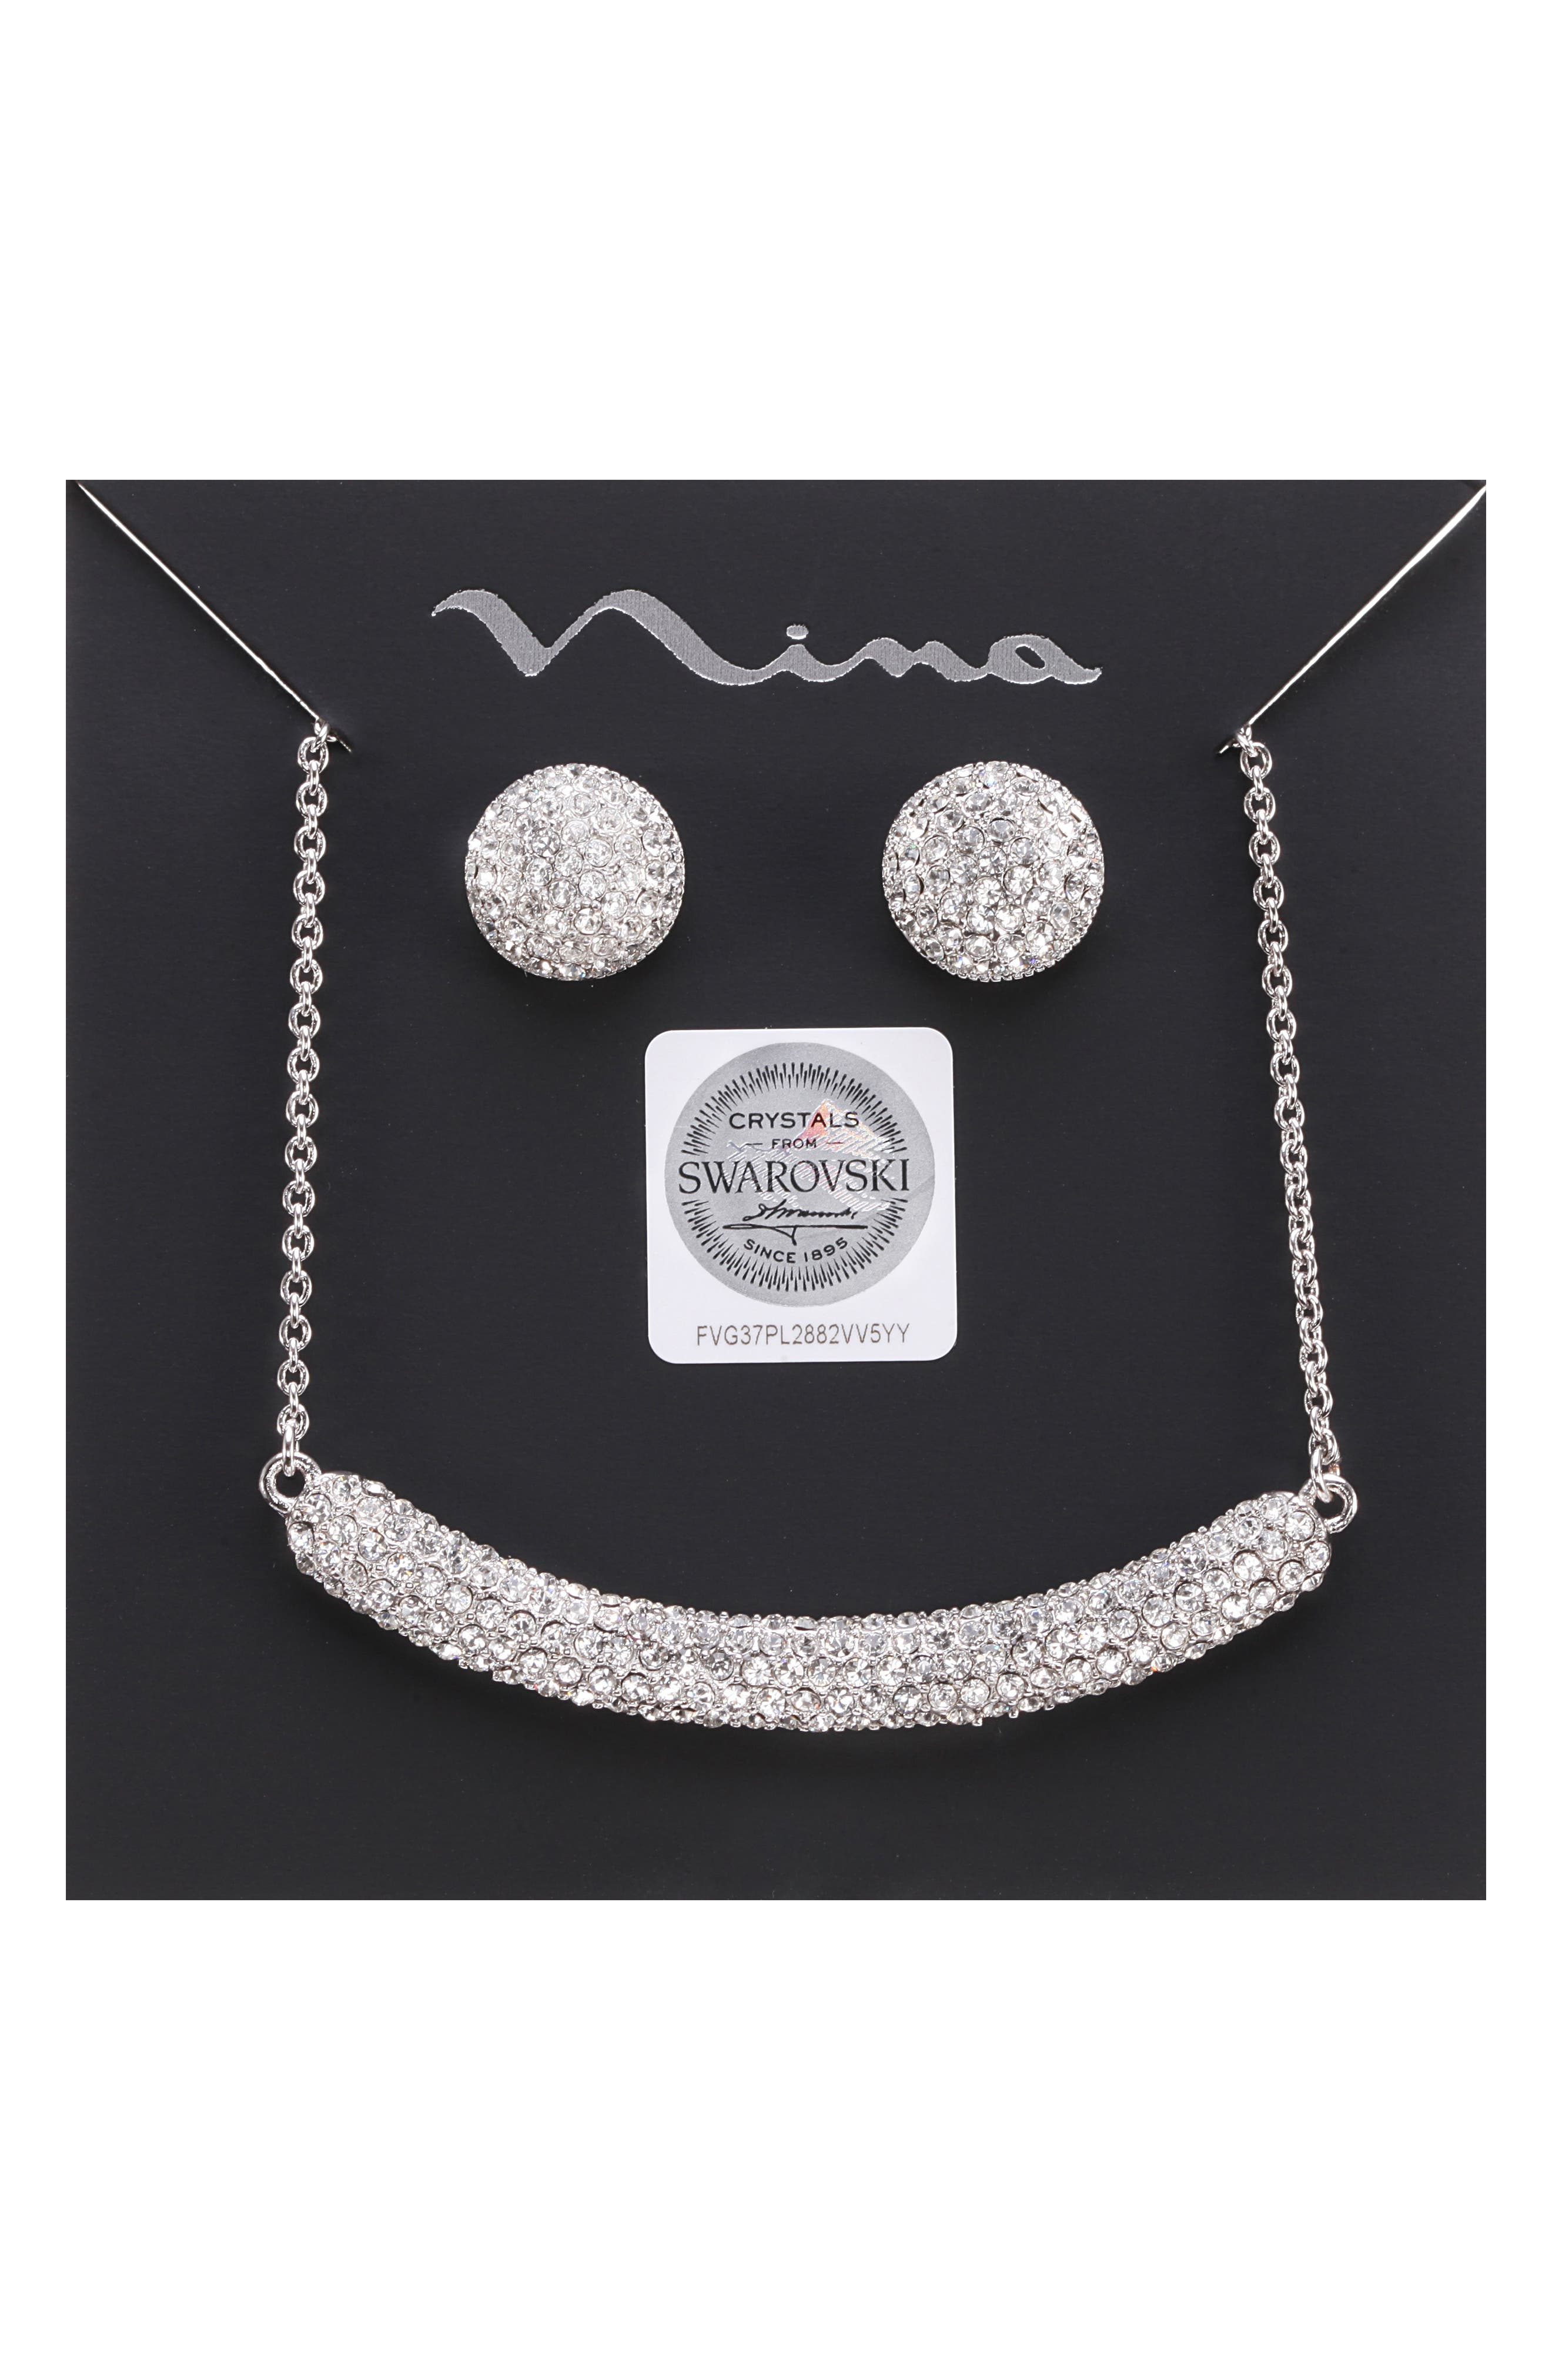 Pavé Swarovski Crystal Necklace & Stud Earrings Set,                             Alternate thumbnail 5, color,                             WHITE/ SILVER